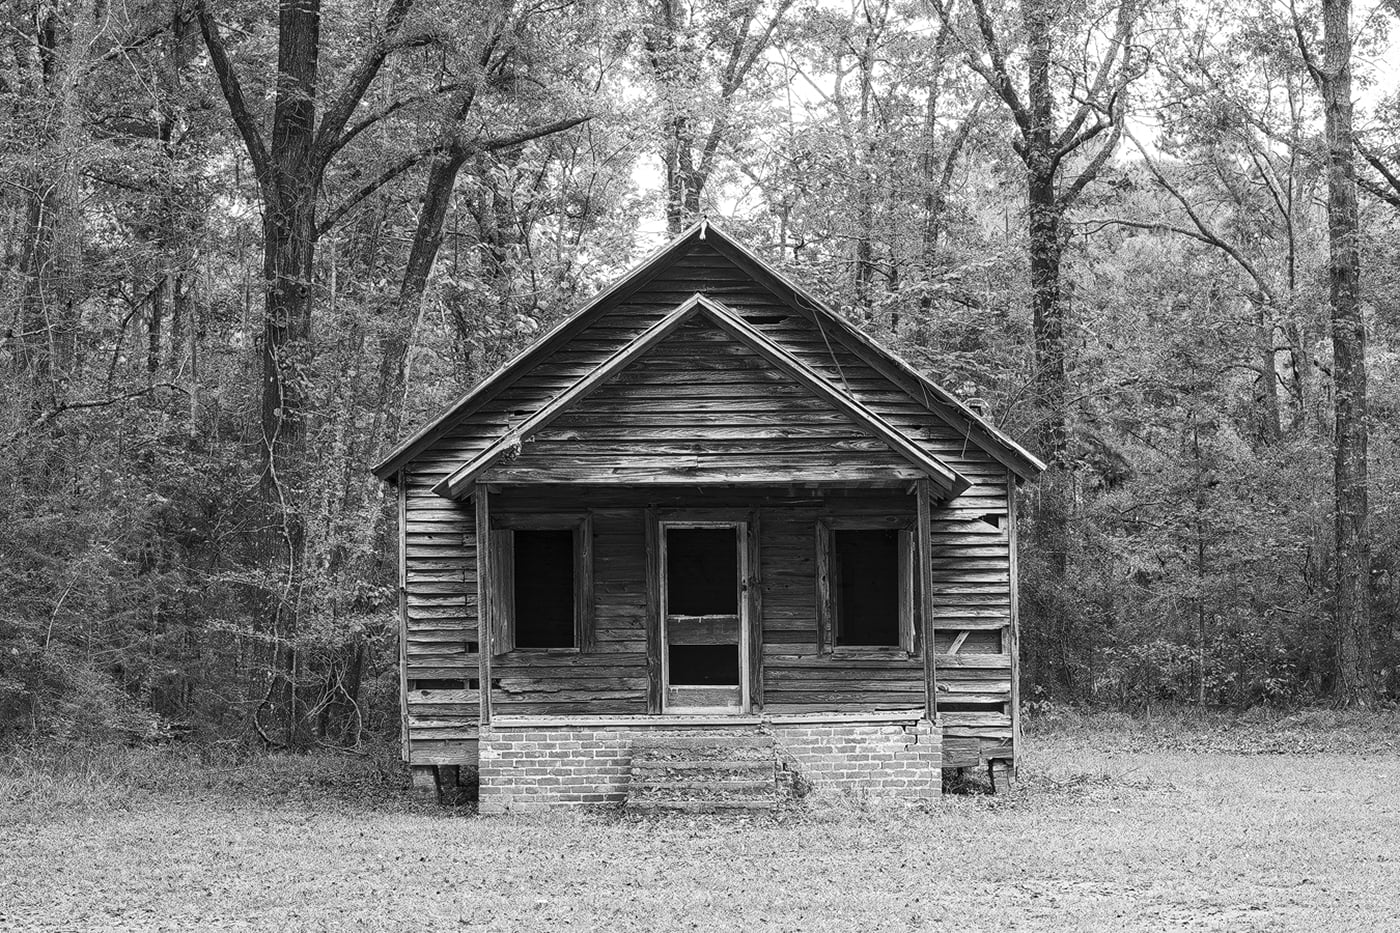 Little Abandoned Schoolhouse in the Forest - Black and White Photograph by Keith Dotson. Click to buy a print.